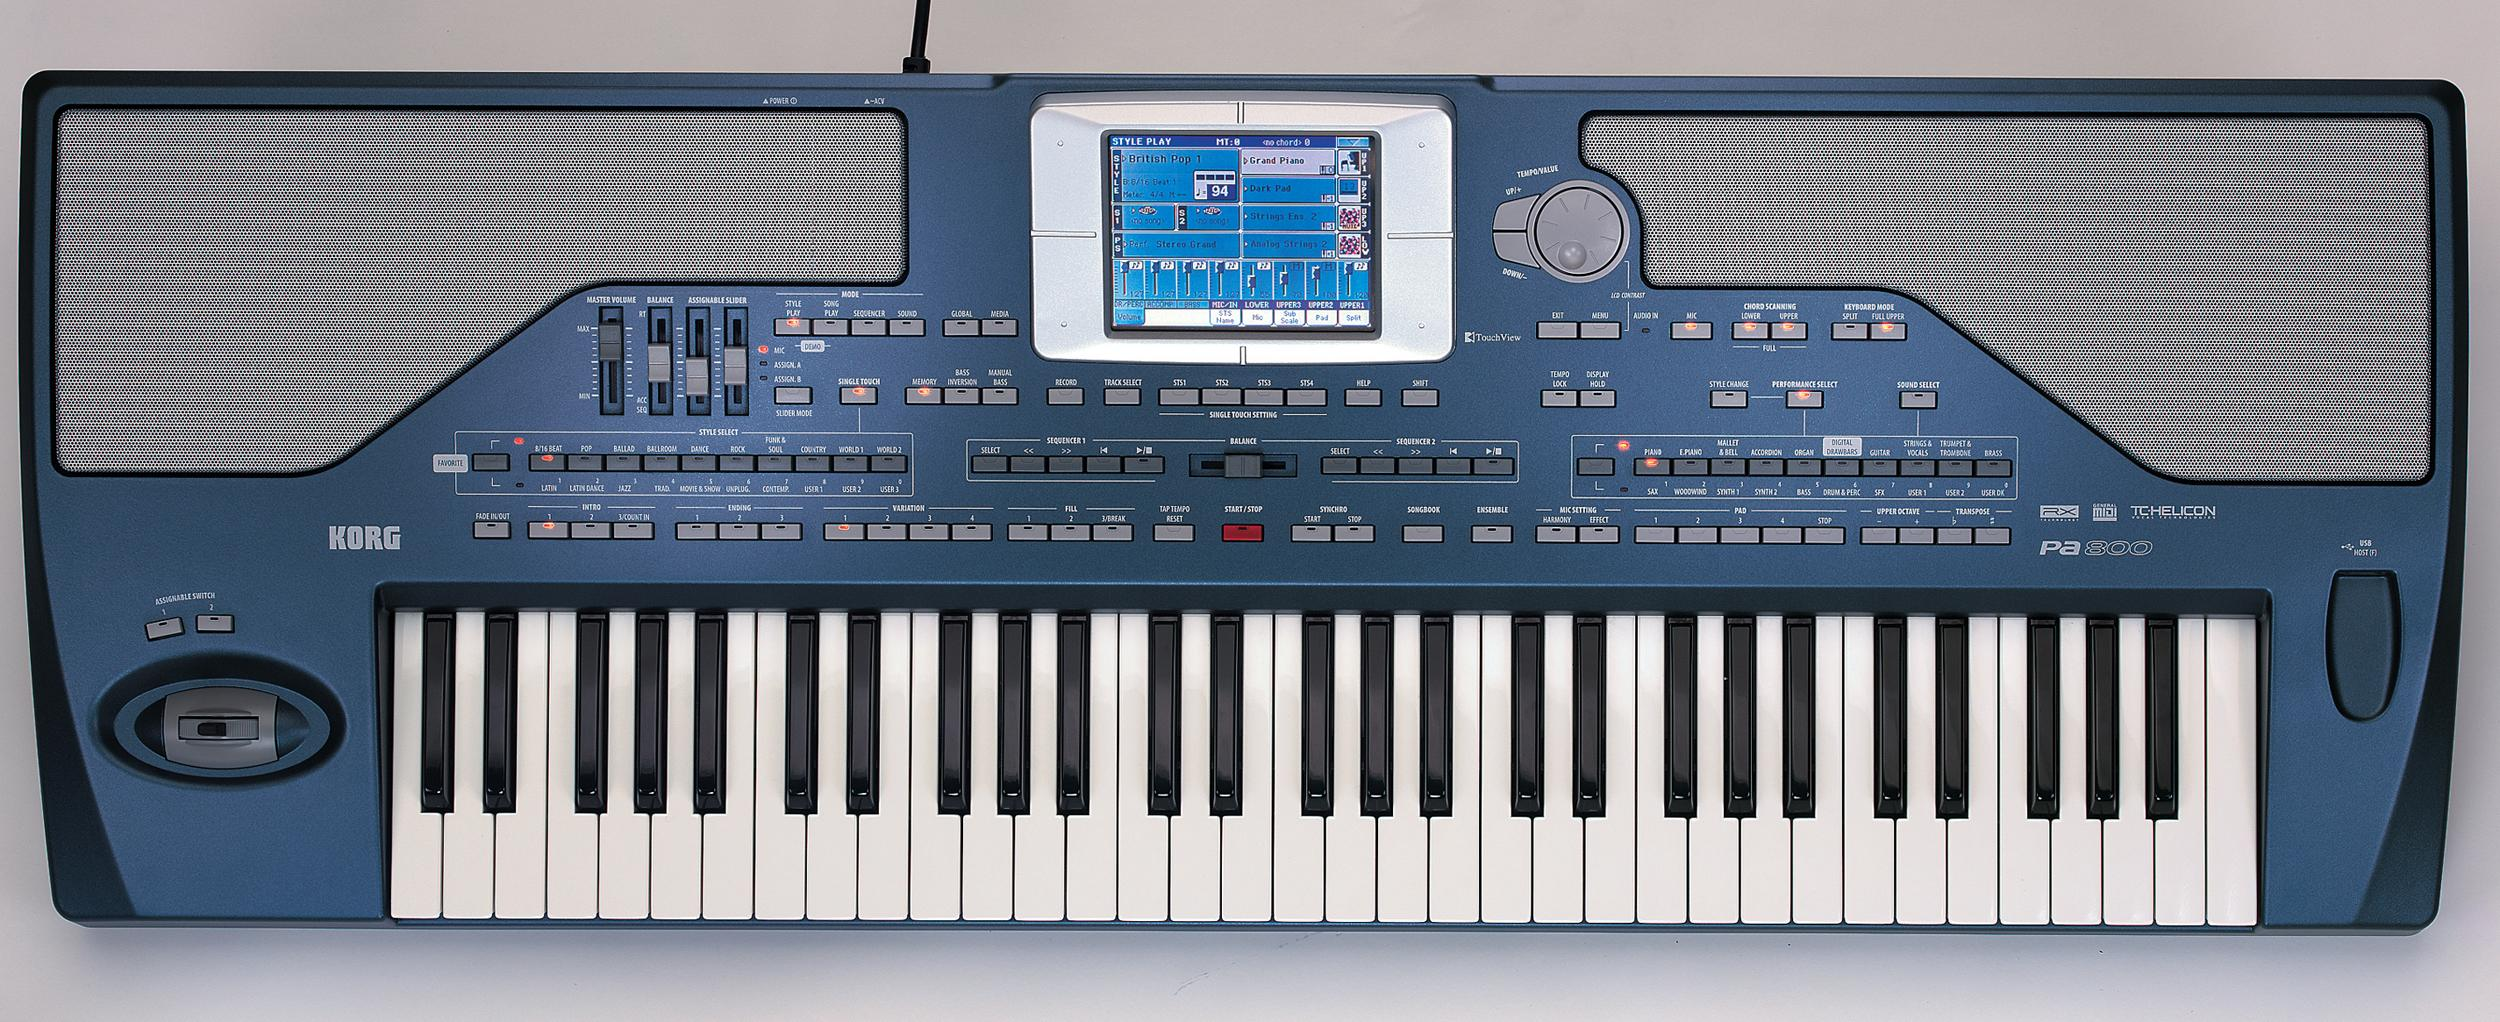 Pro keyboards professional keyboards and pianos yamaha for Korg or yamaha digital piano